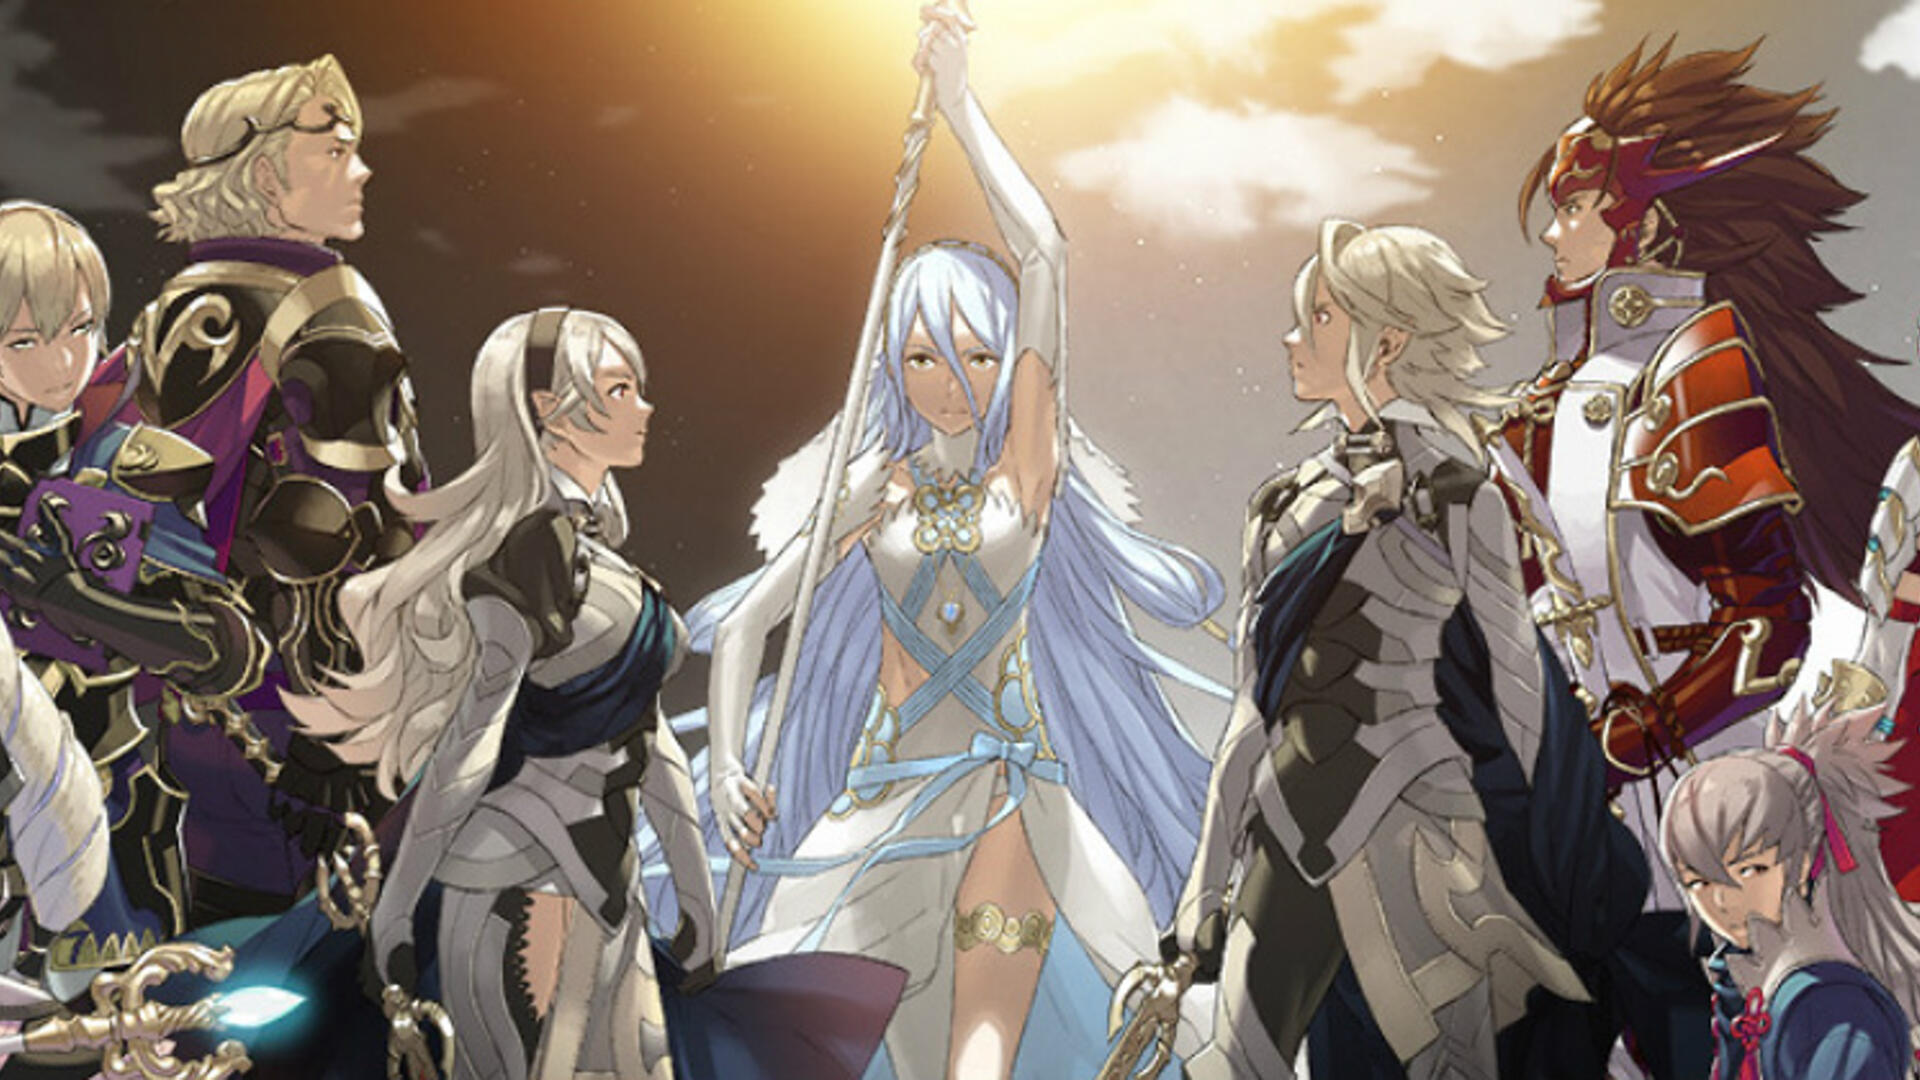 Don't Be Afraid: Give Fire Emblem's Classic Mode a Shot